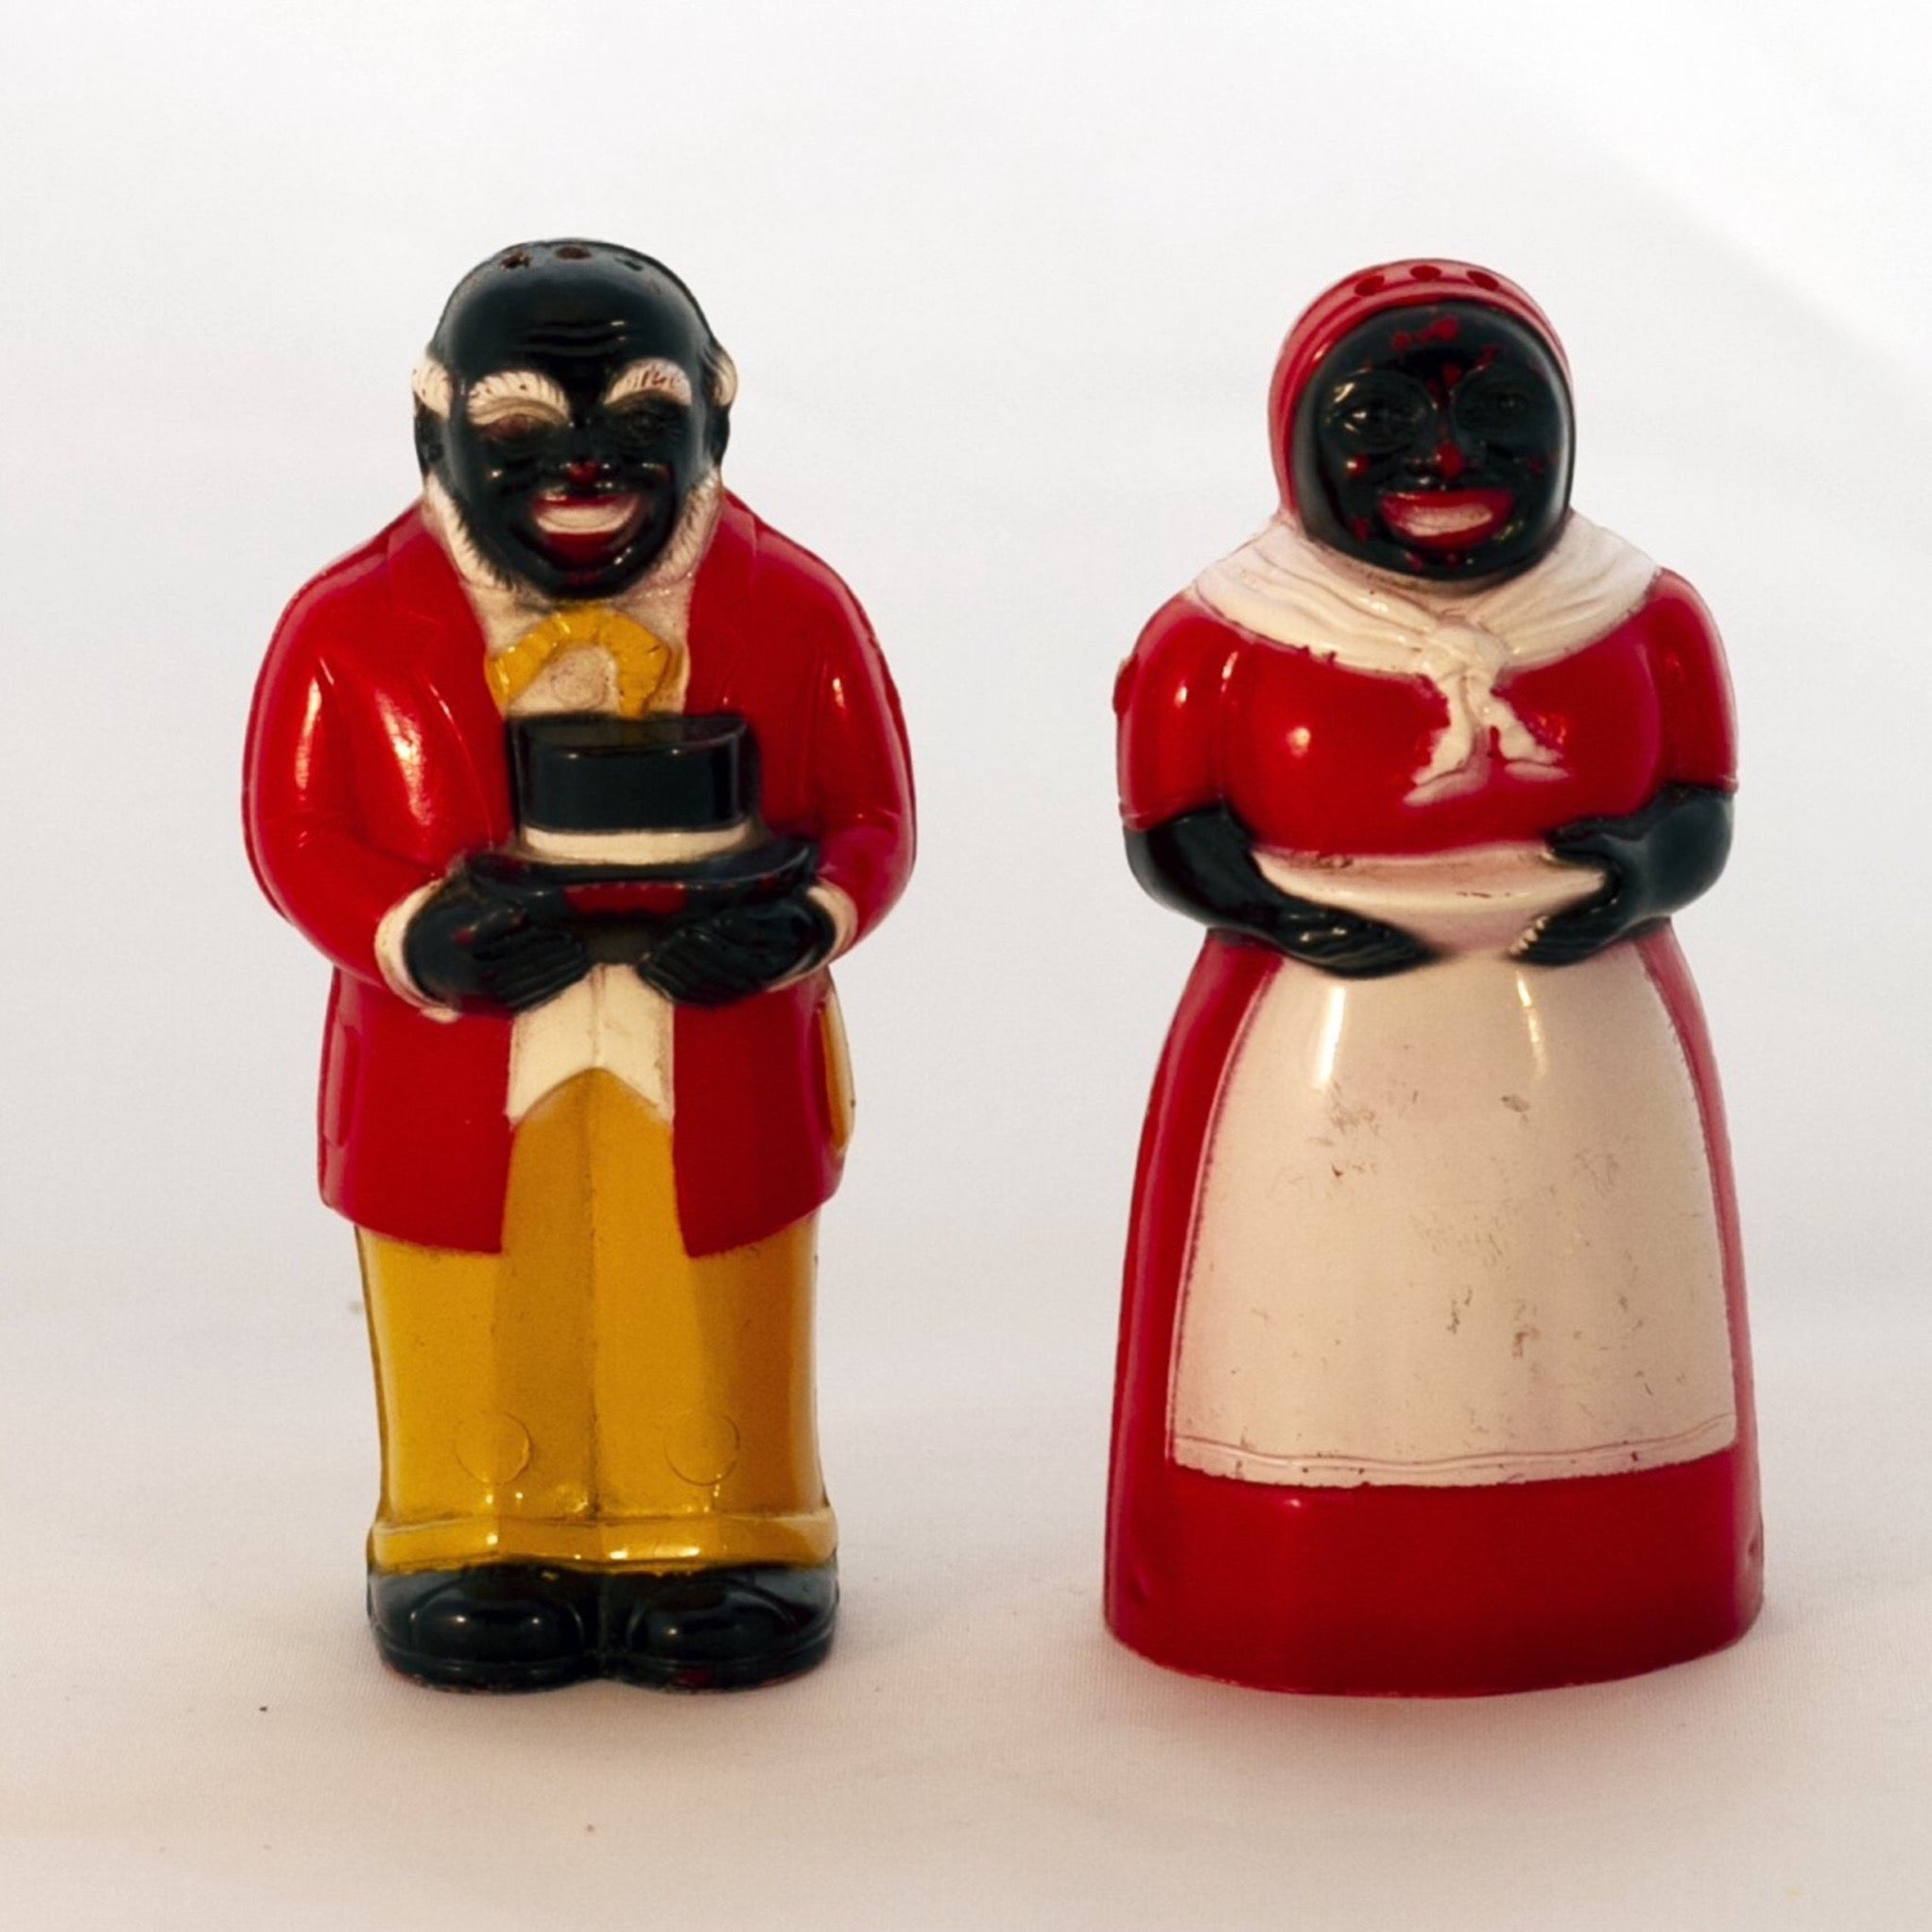 "Black Americana Molded Hard Plastic 1940s JEMIMA & MOSE SHAKERS 3 ½"" Made by F & F Mold and Die Works"